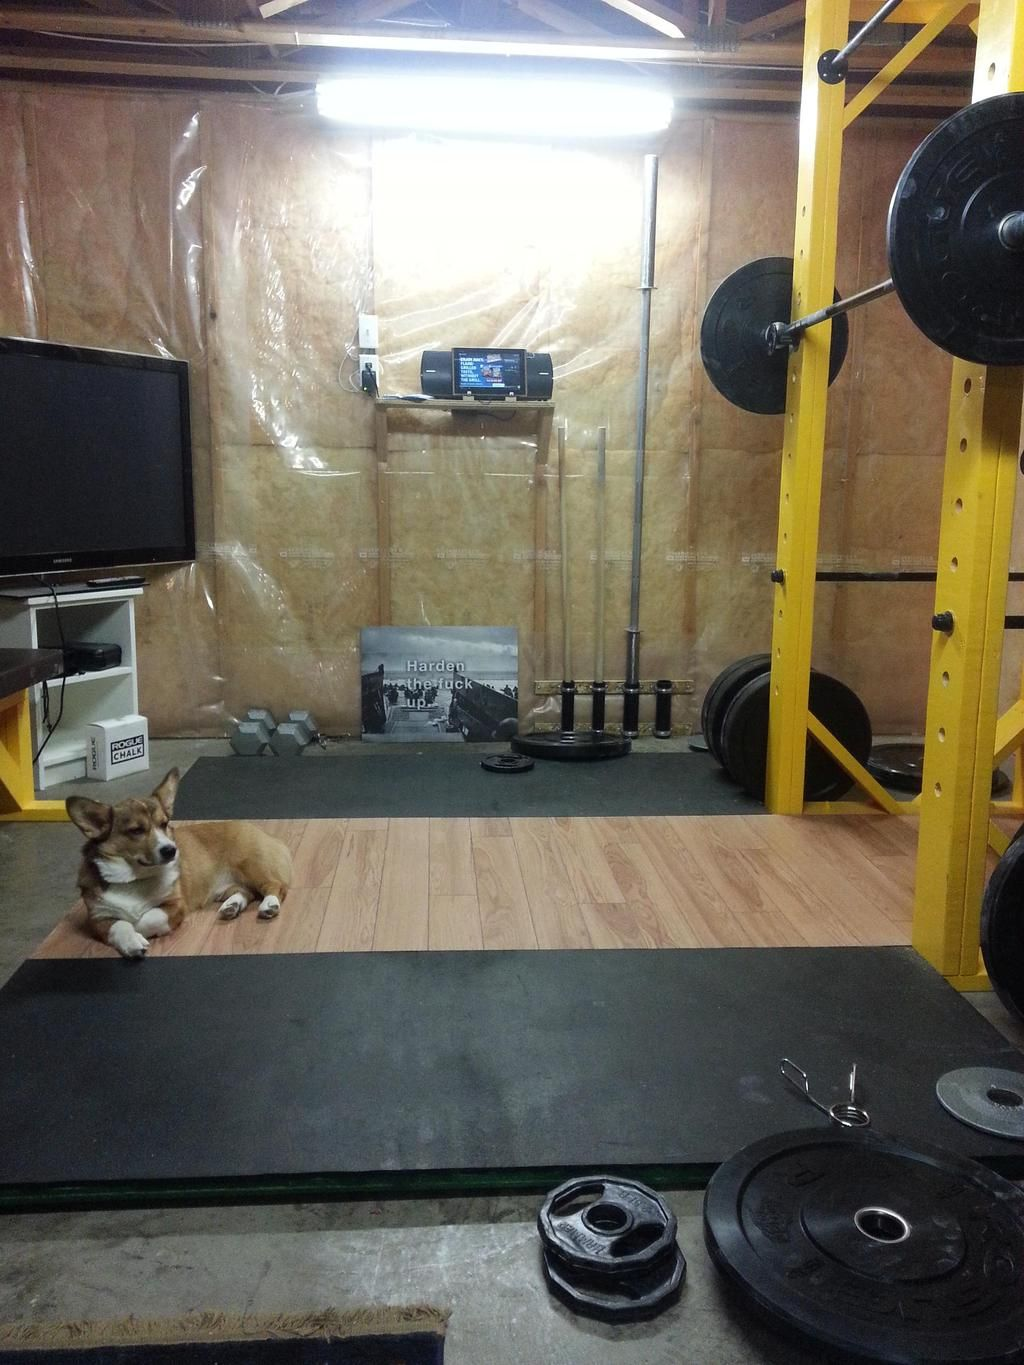 Garage Gym Reviews Diy Platform I Made A Squat Rack Power Rack And Lifting Platform For Under 200